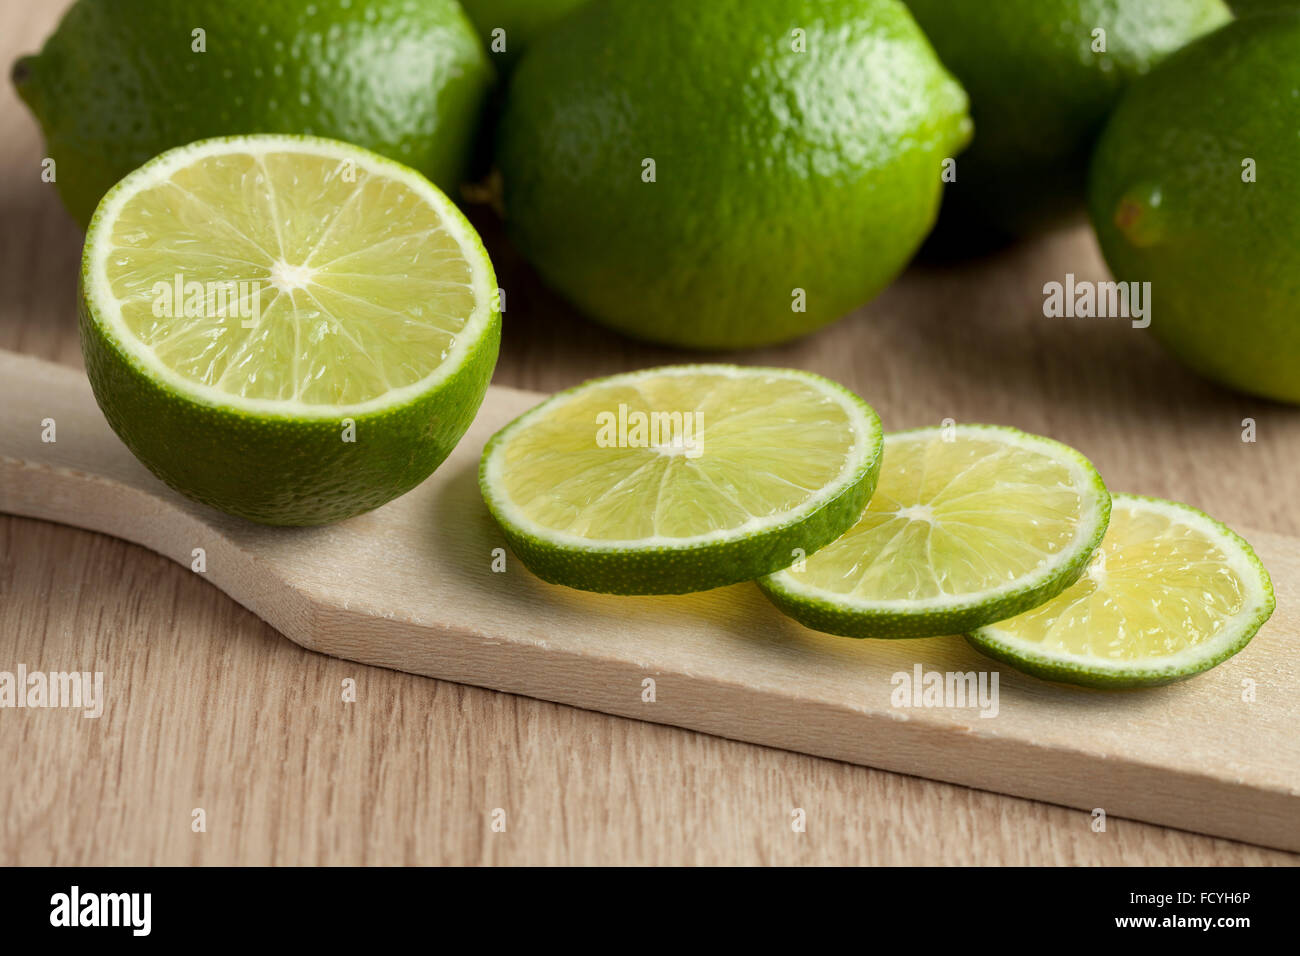 Fresh cut green limes on a cutting board - Stock Image